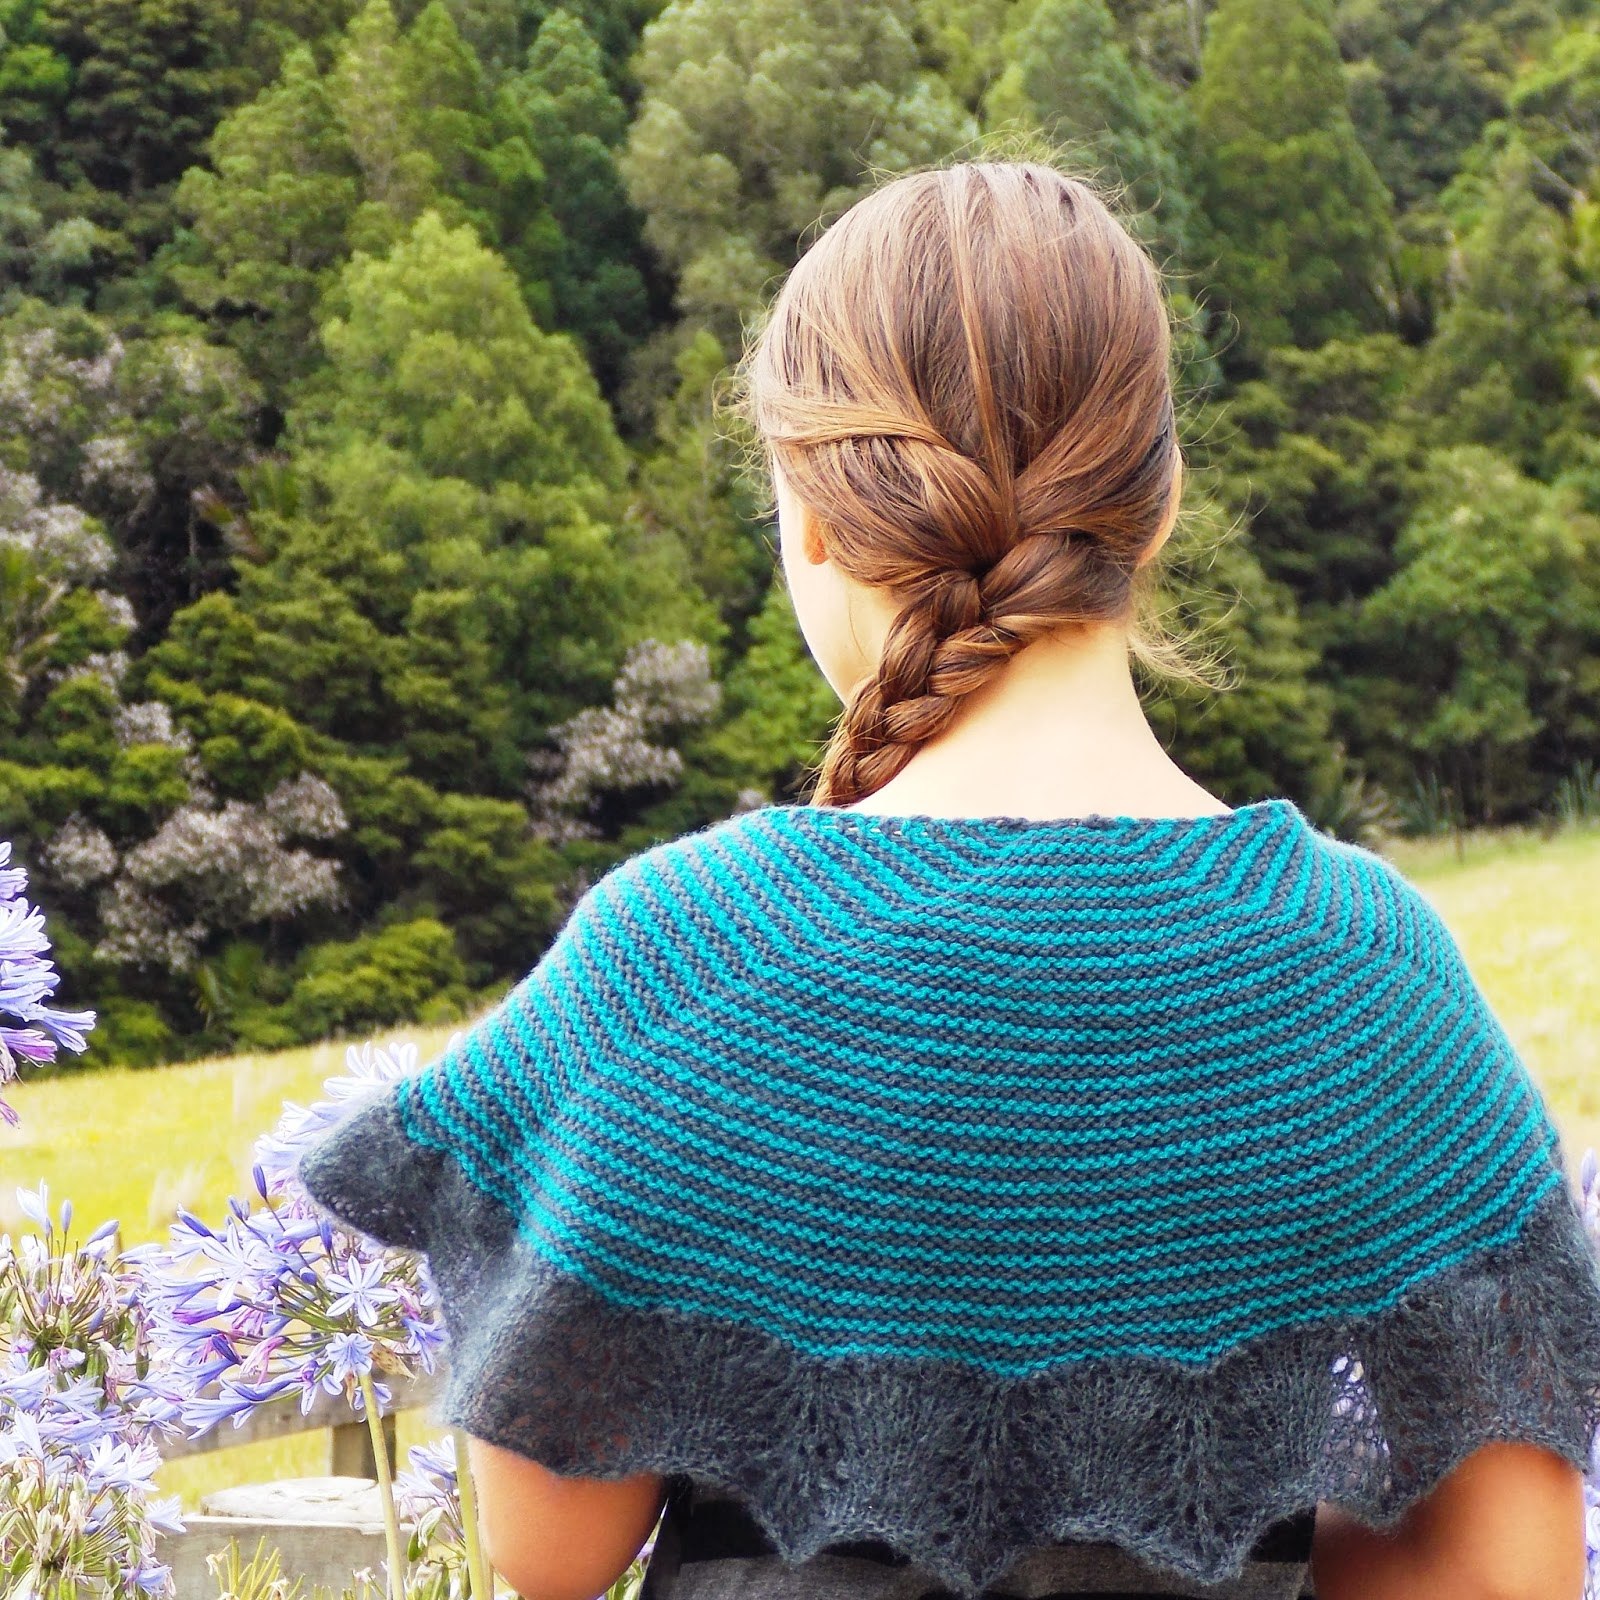 Filigree by Gabriella Henry. Pretty vintage inspired shawl knitting pattern. #skeinz #kidmohair Click through to purchase.